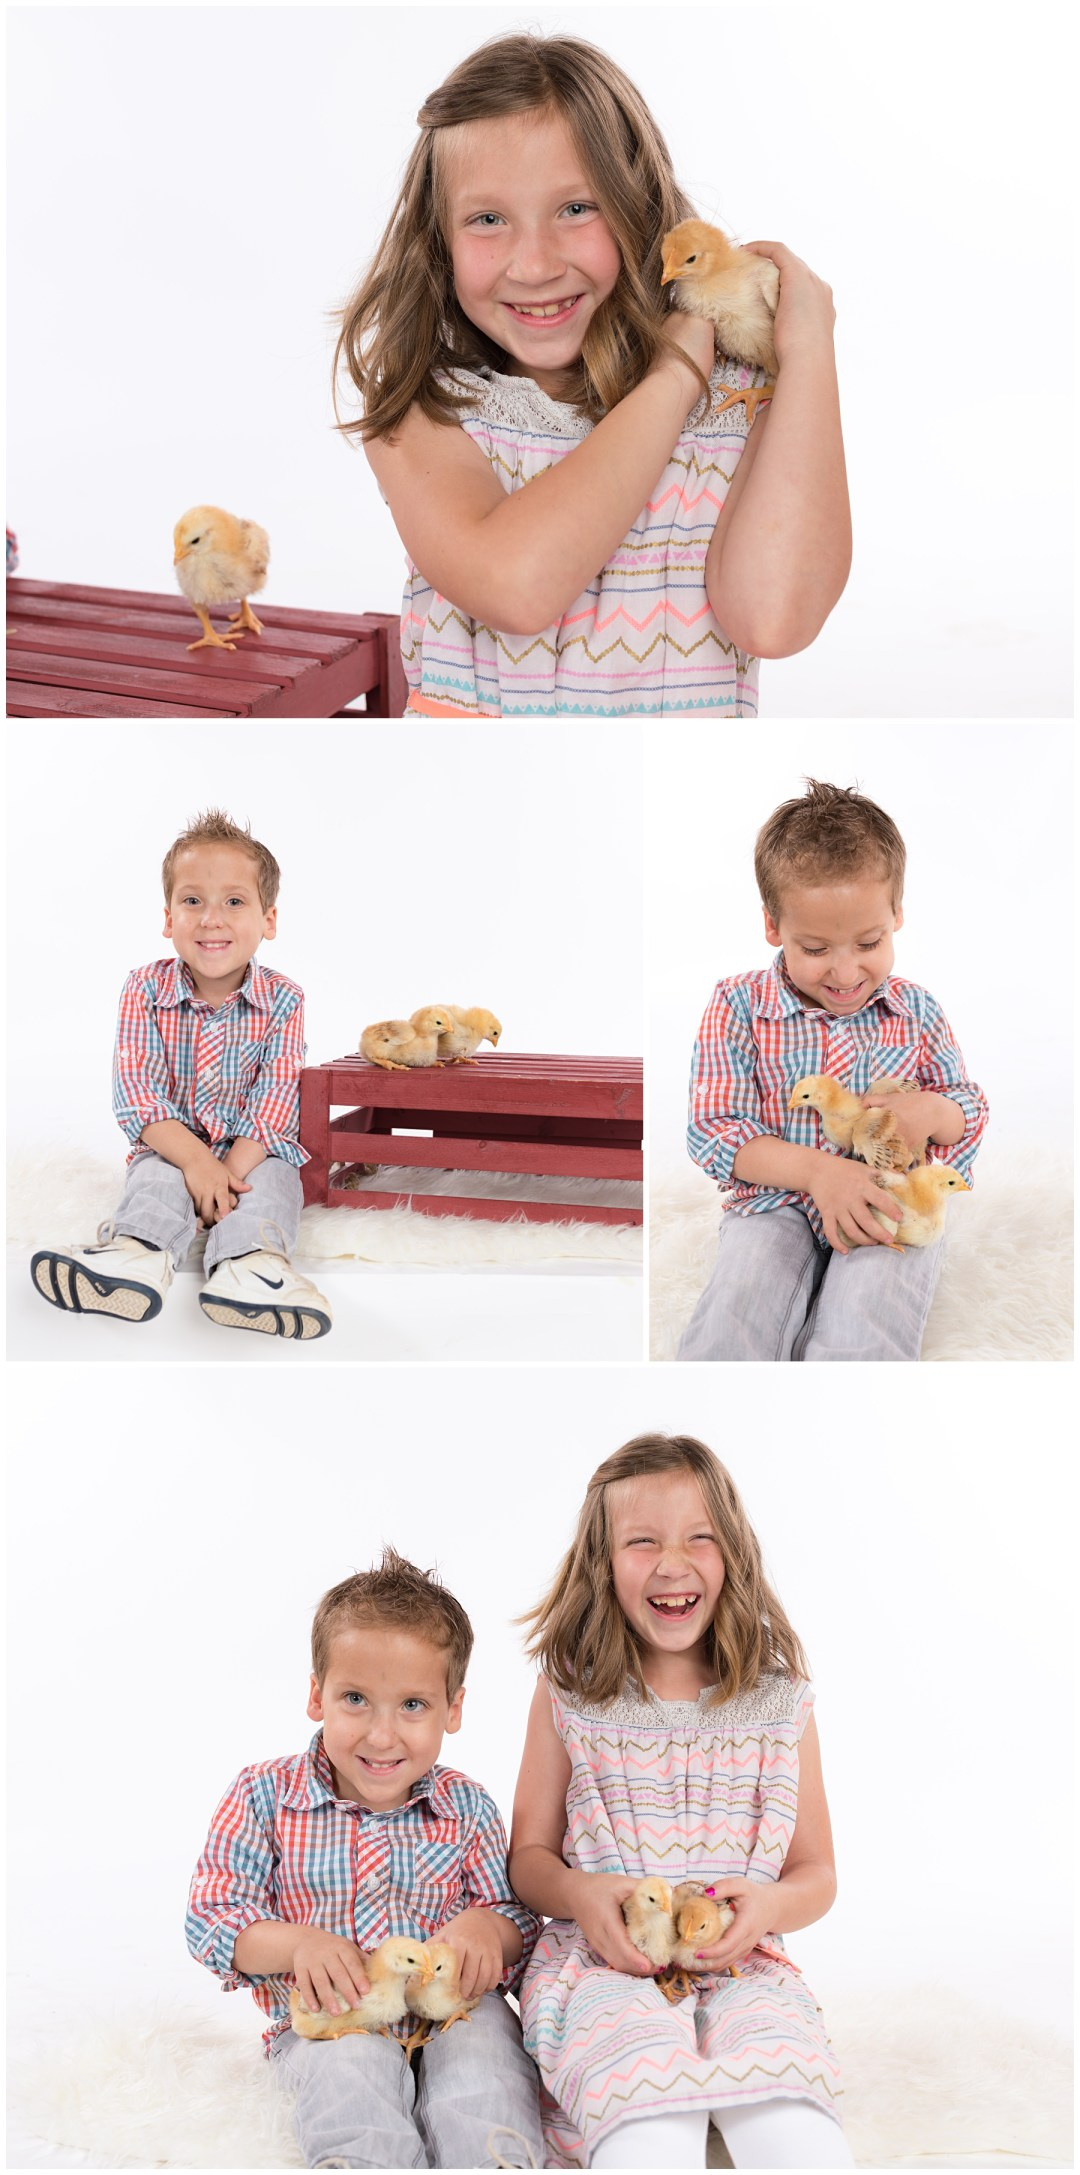 Kids portraits with baby chicks